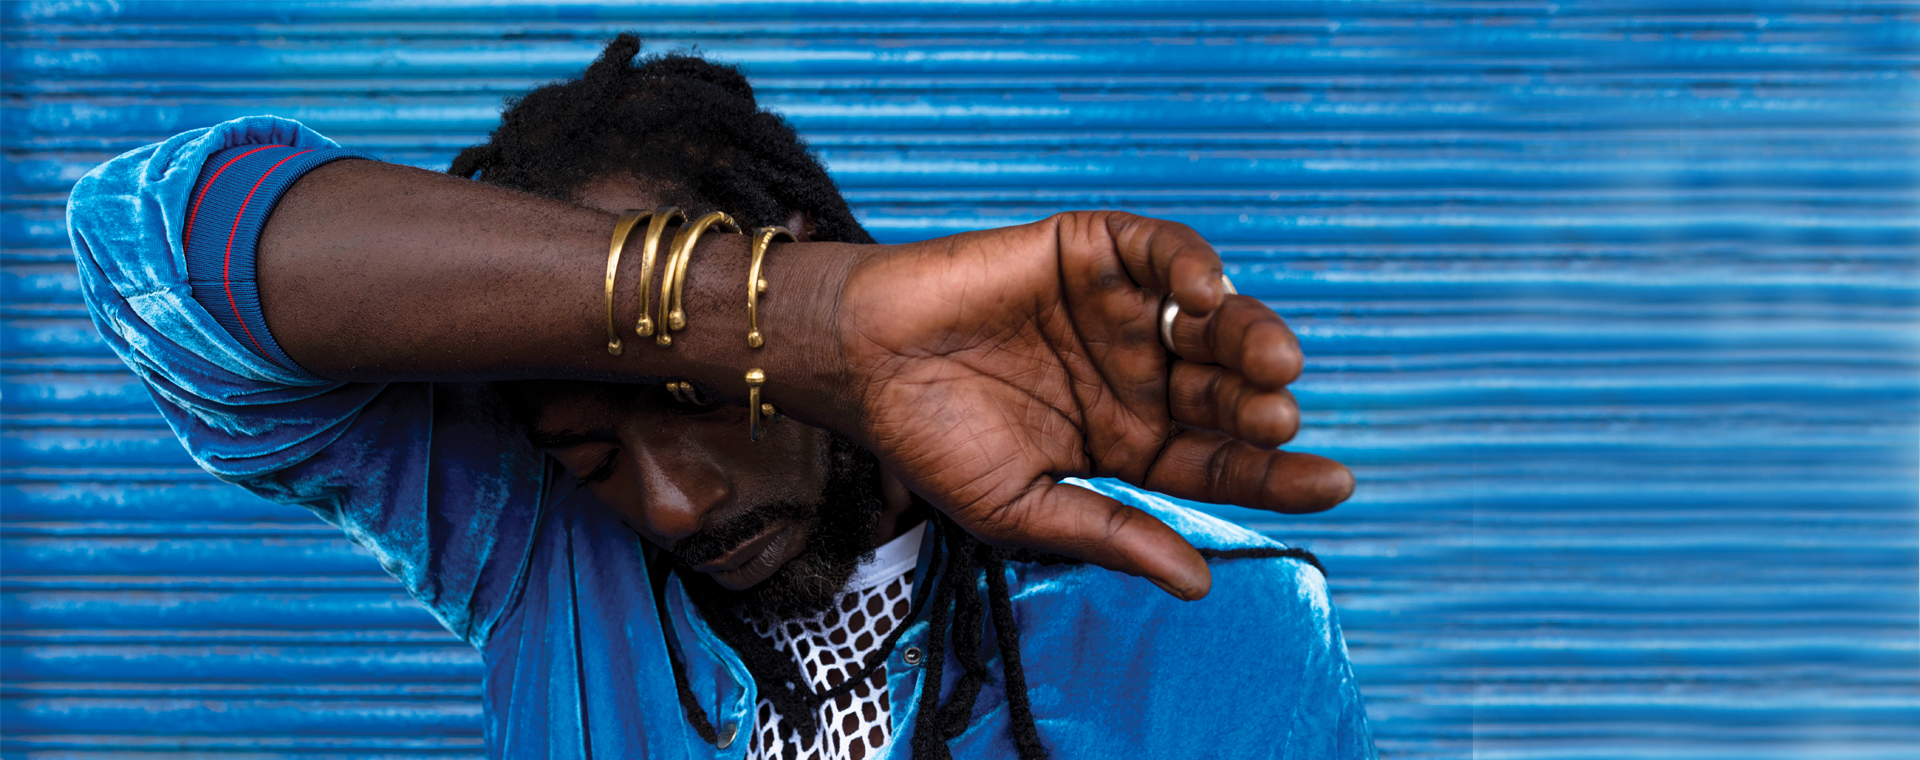 LATEST ISSUE <br><b>Buju Banton</b></br>